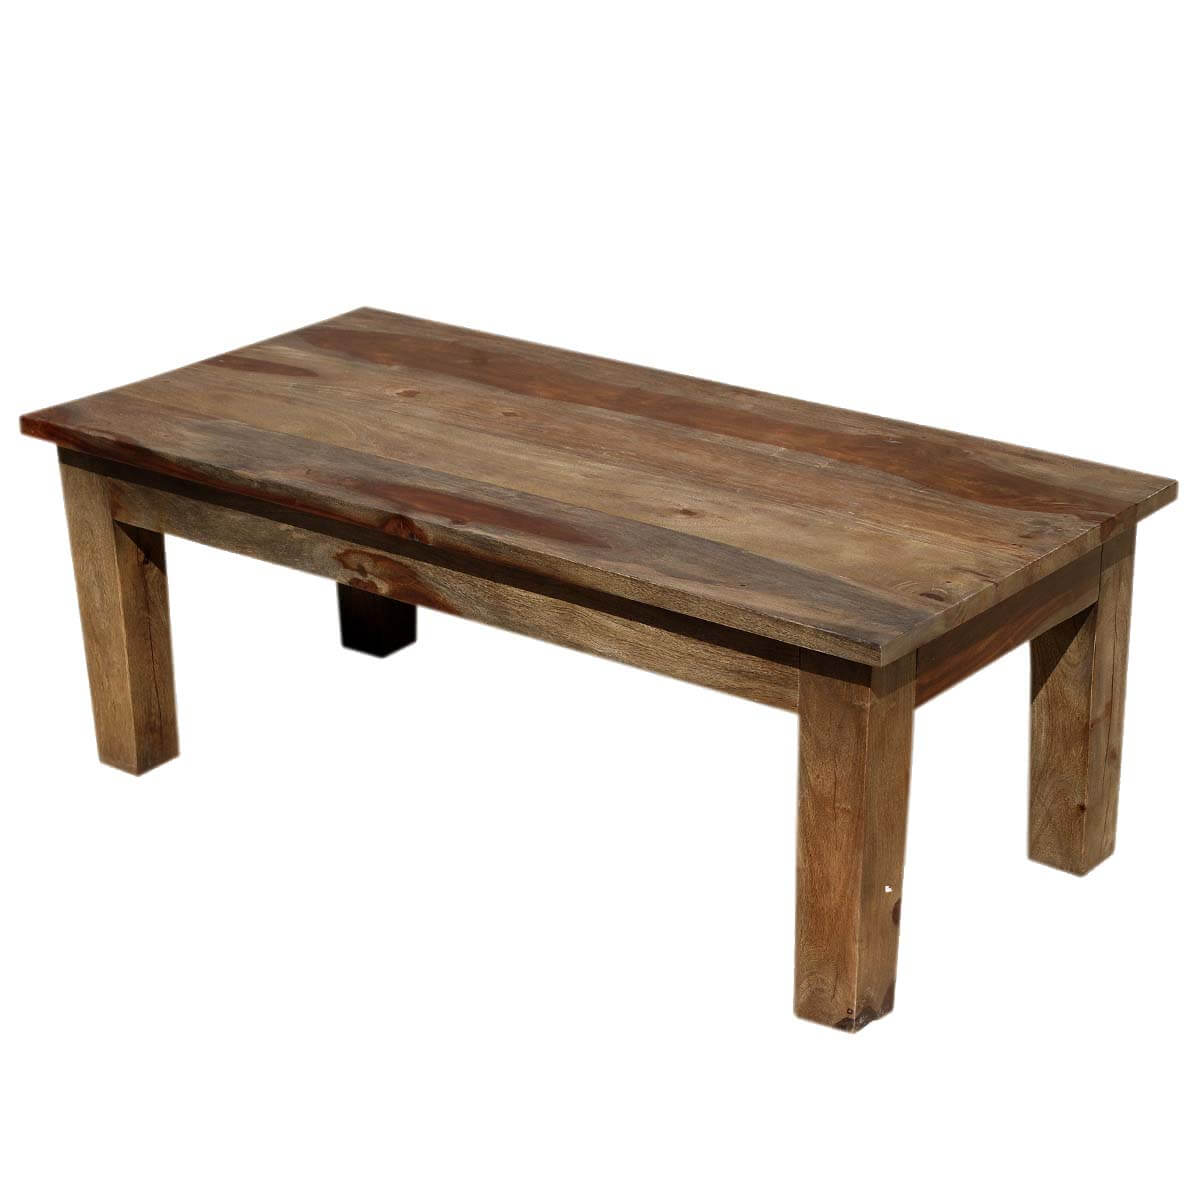 Santa Fe Simple Solid Indian Rosewood Coffee Table